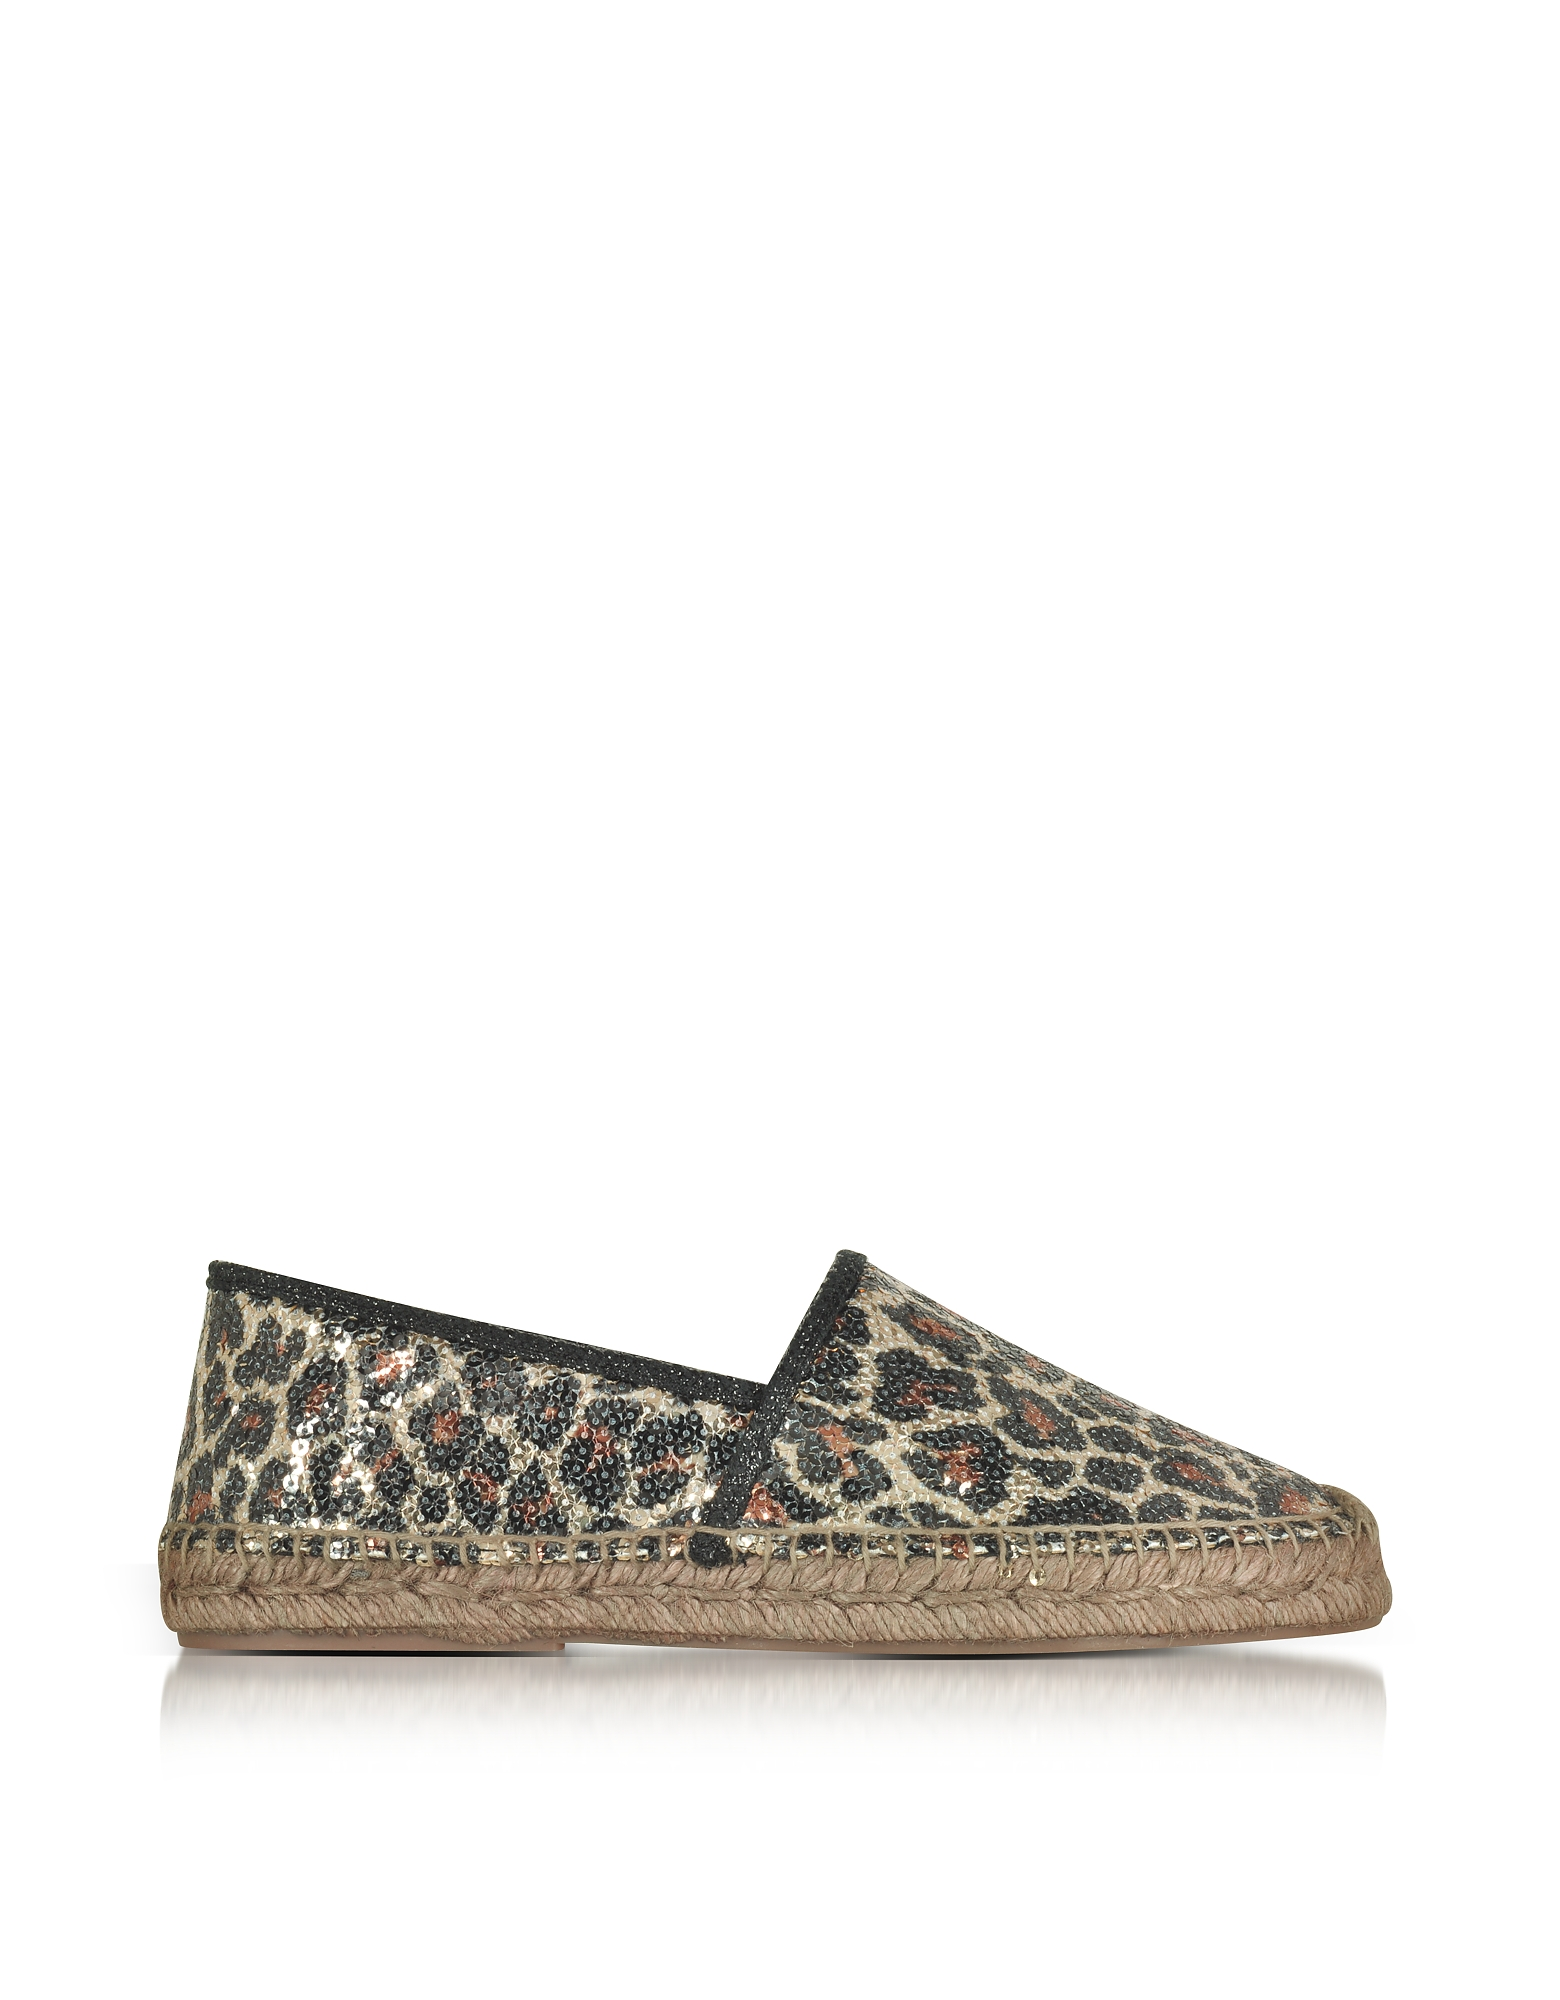 Marc Jacobs Shoes, Sienna Gold & Multicolor Animal Print Espadrilles